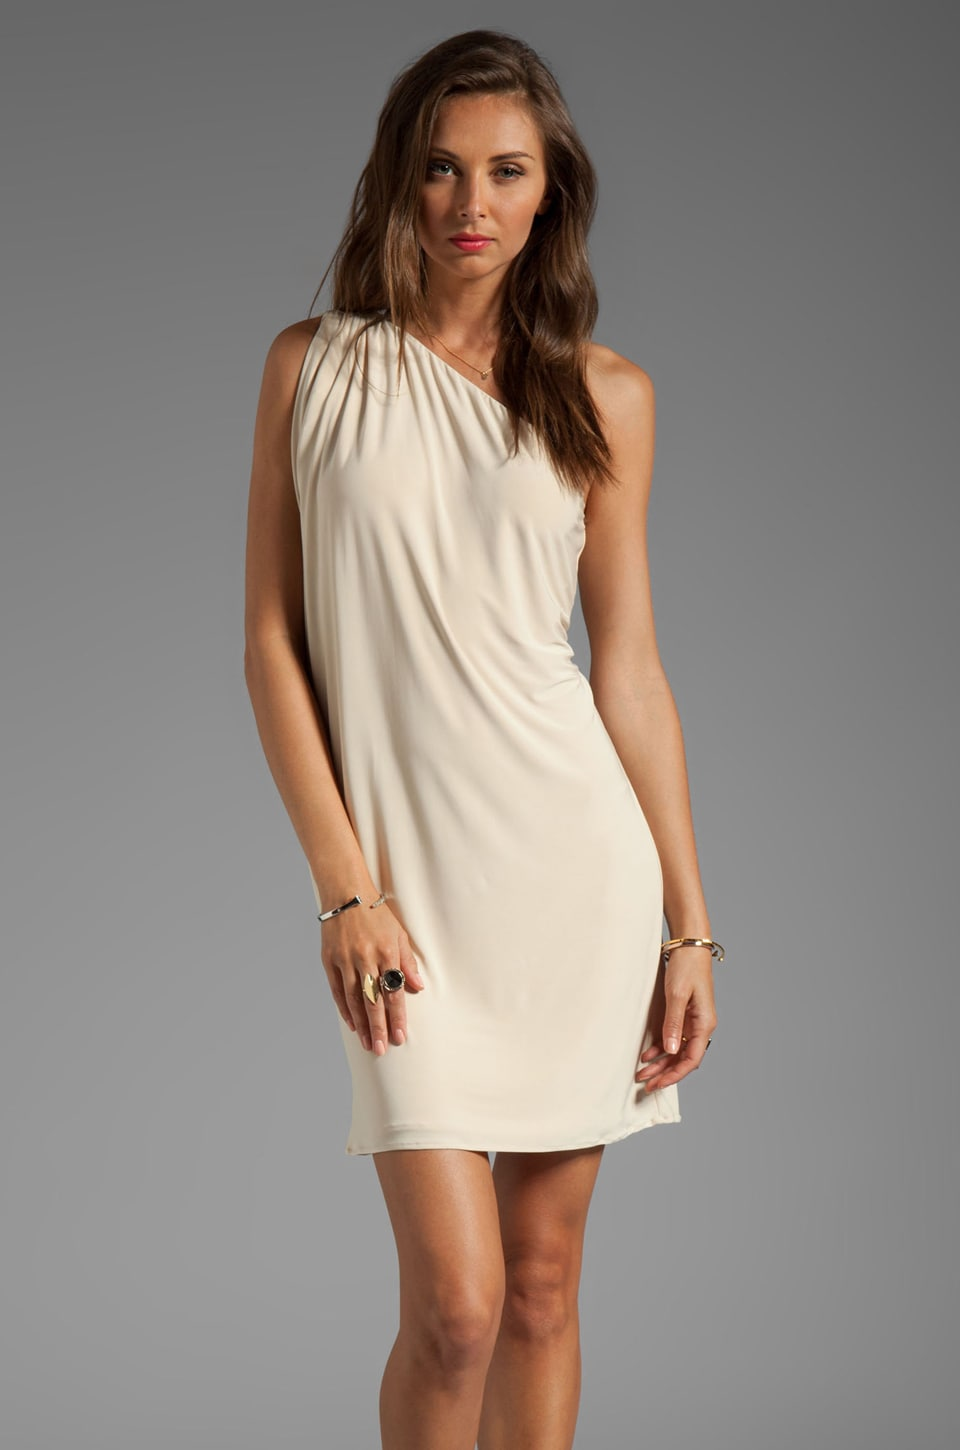 T-Bags LosAngeles One Shoulder Mini Dress in Cream